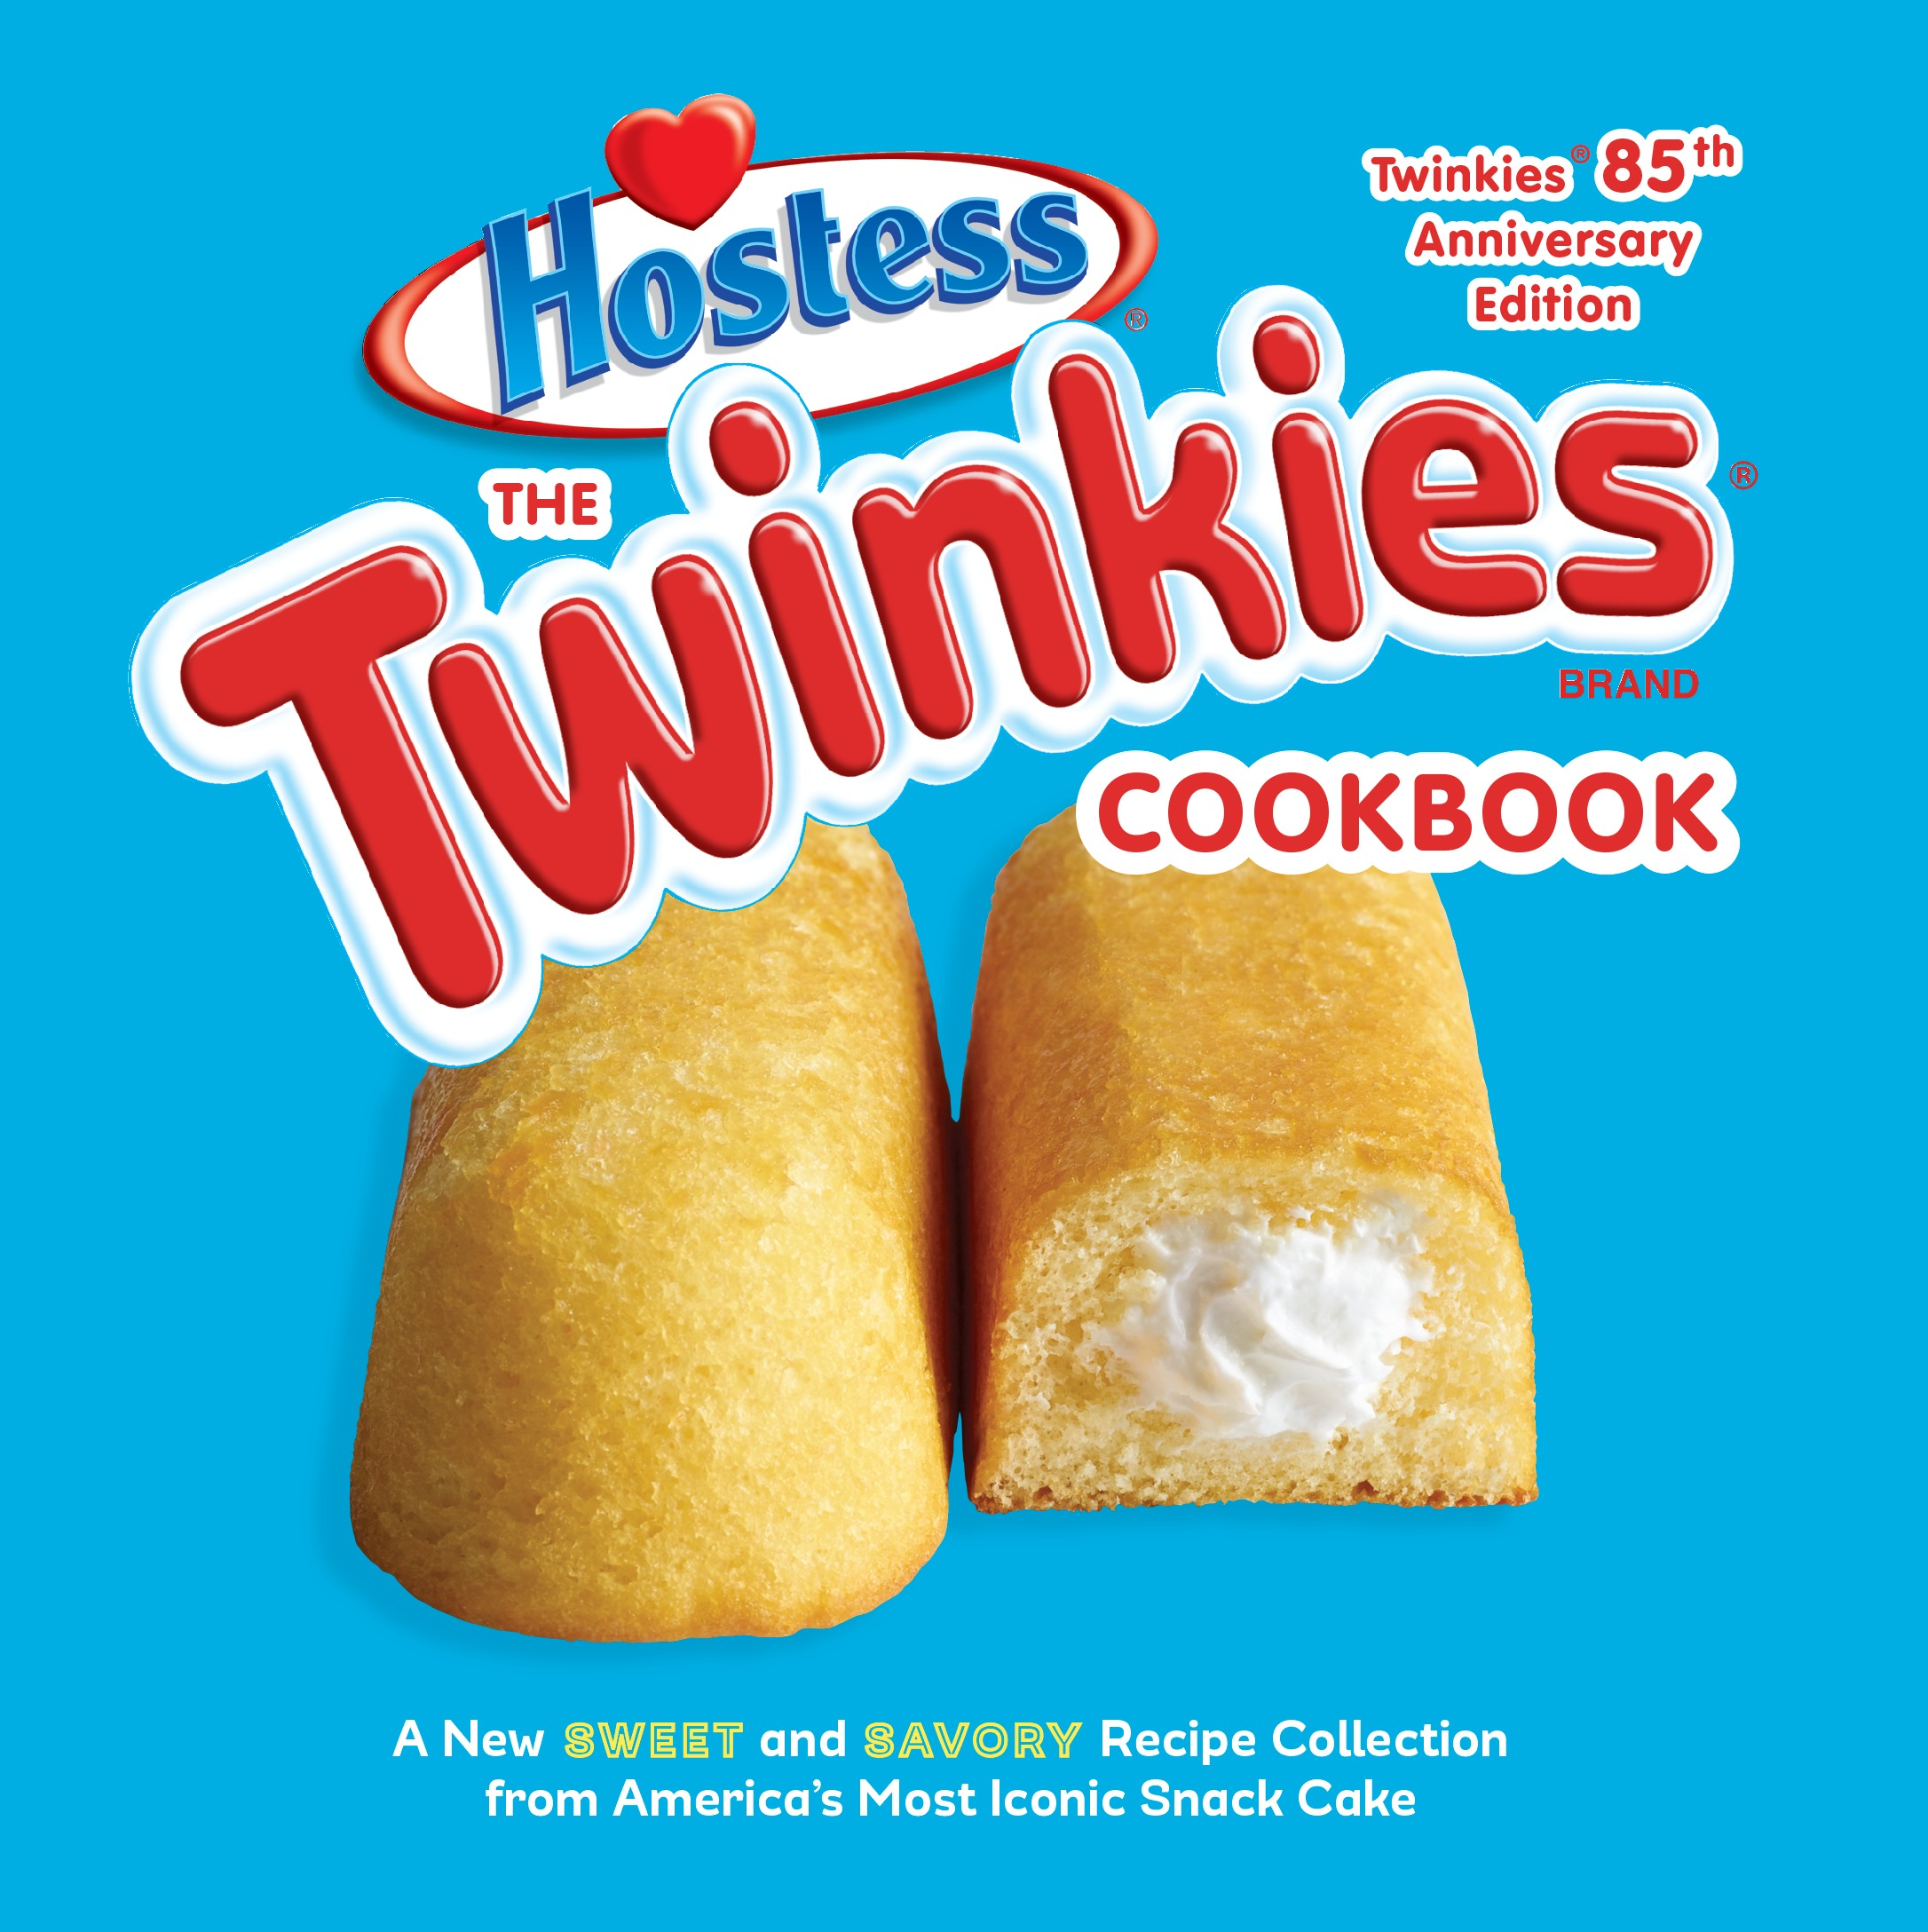 The Twinkies Cookbook, Twinkies 85th Anniversary Edition (Hardcover)